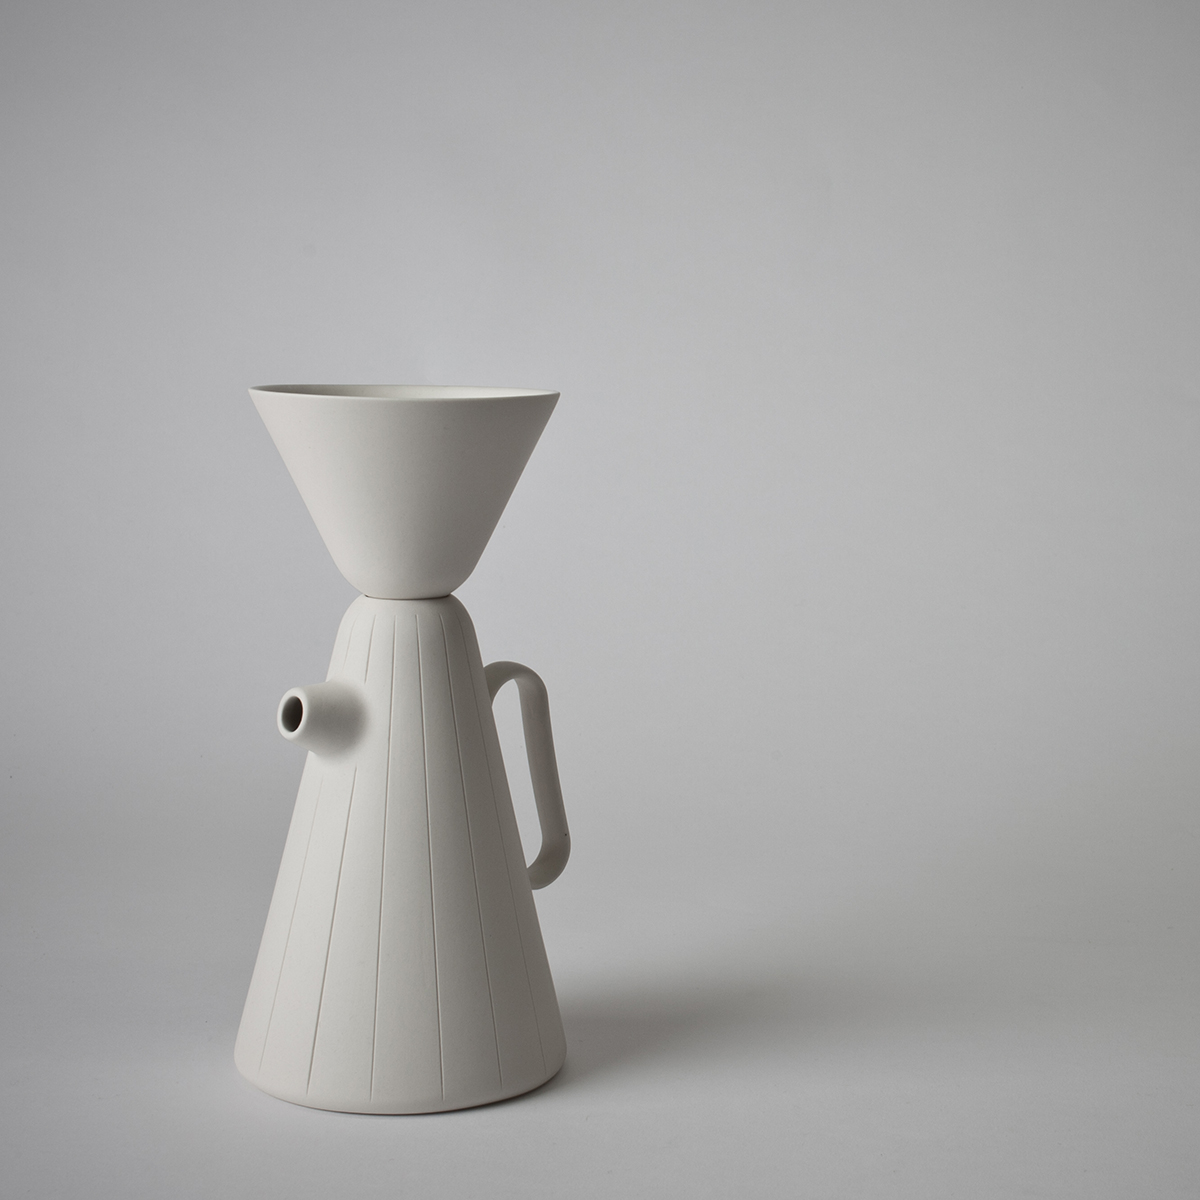 Sucabaruca coffee set by Luca Nichetto for Mjolk :014